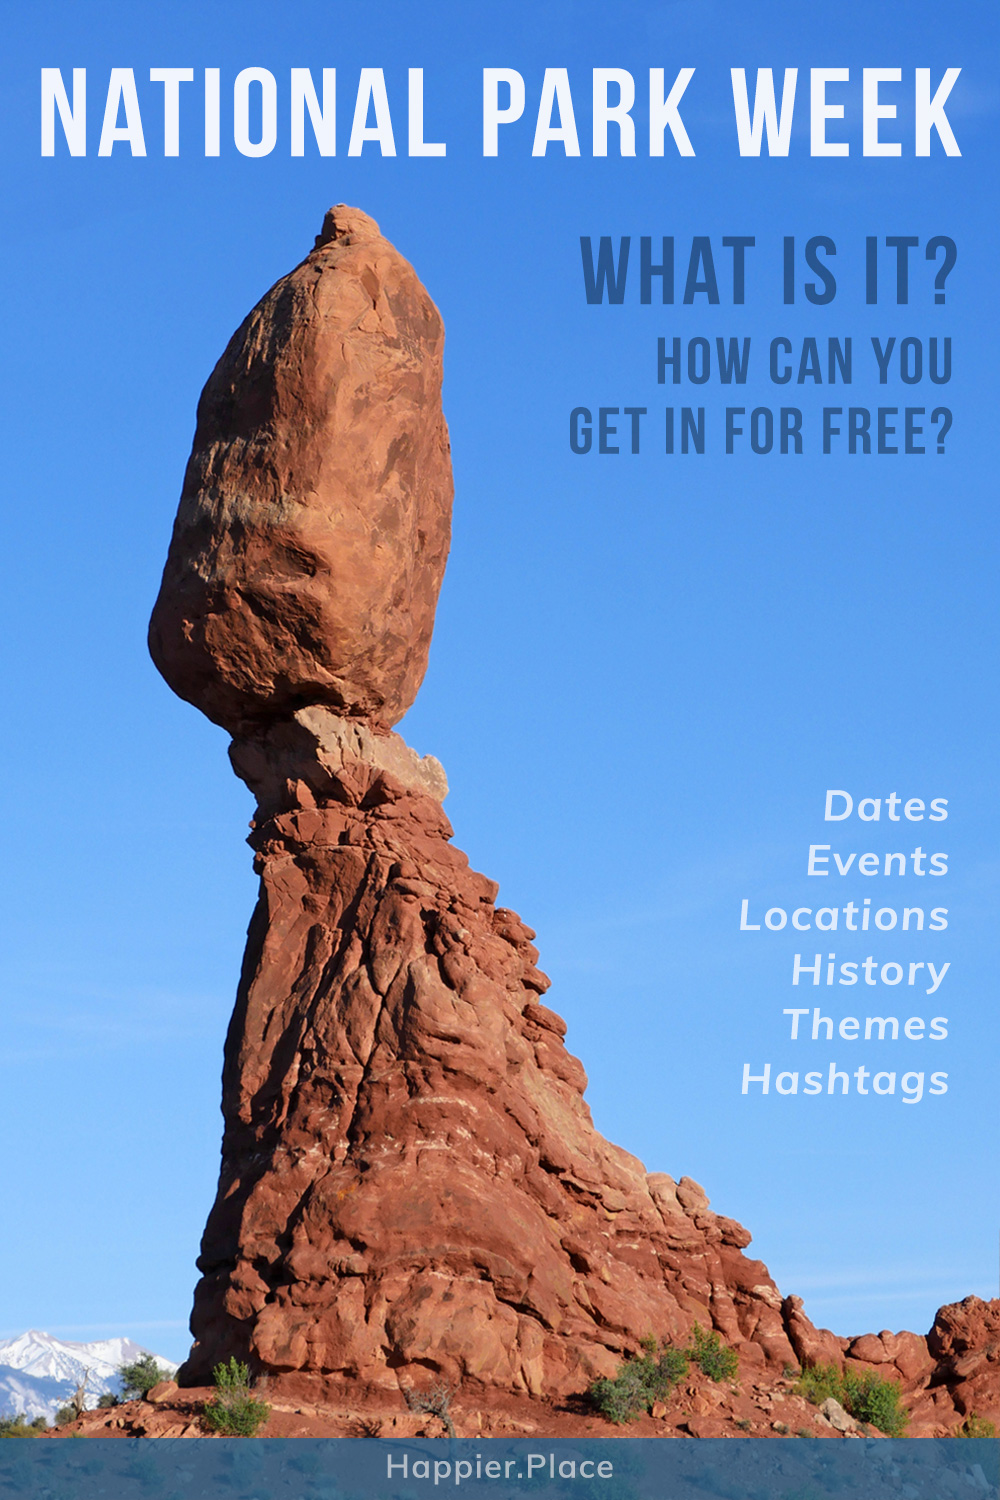 Balanced Rock in Arches National Park, Utah, National Park Week takes place during late April. Learn all you need to know to participate and find out how to get into National Parks for free.